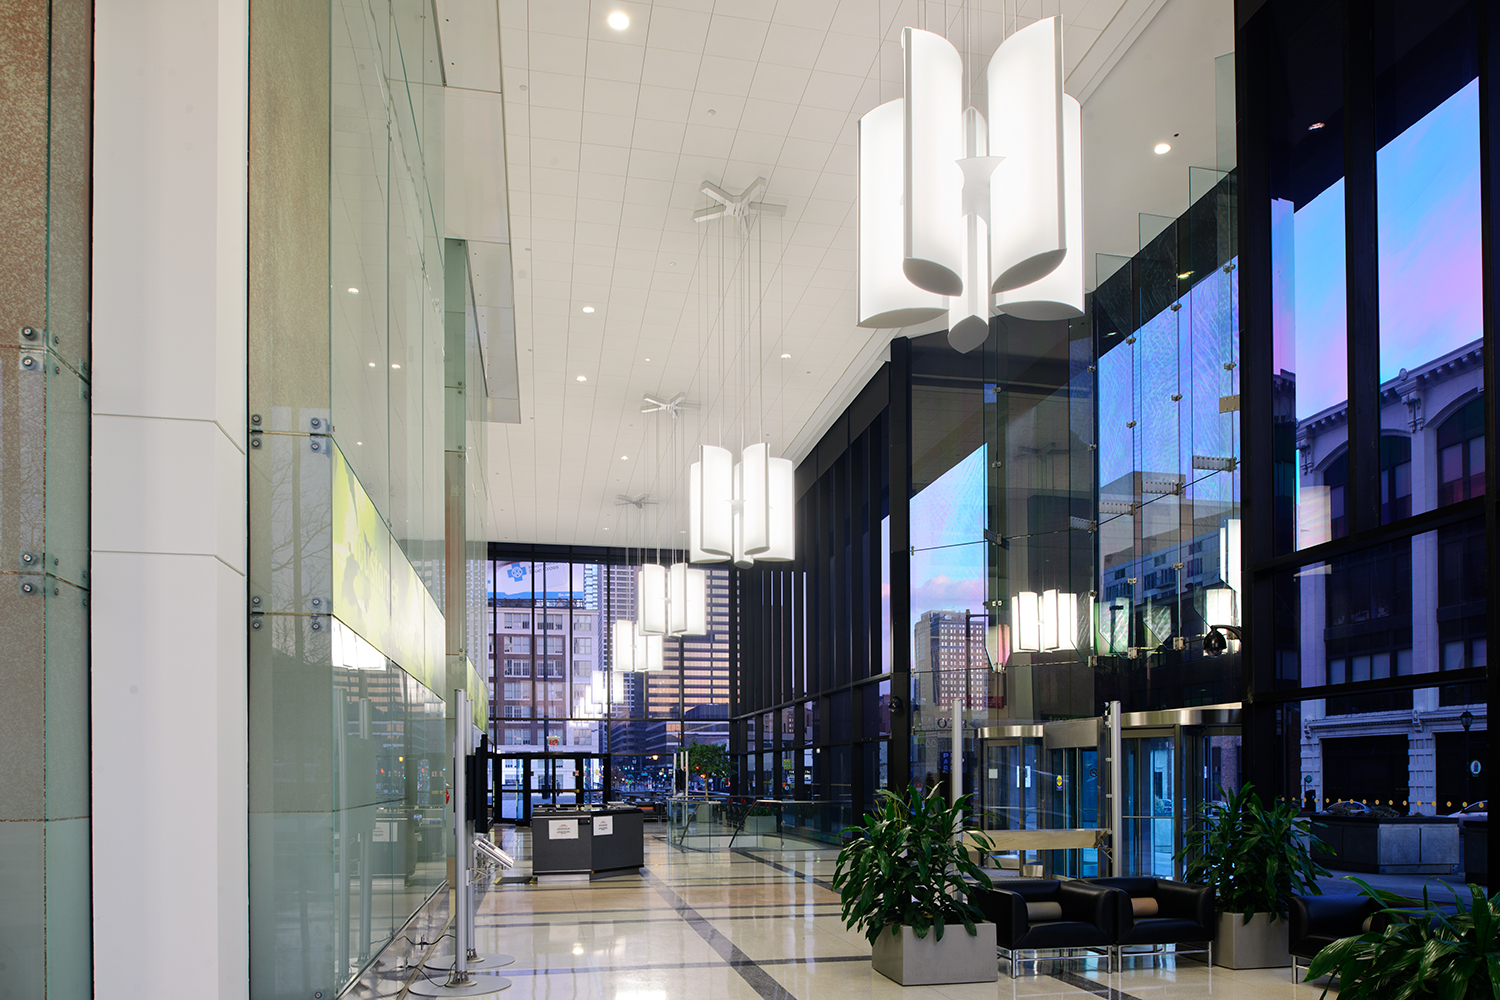 Air Foil pendants configured in multiple star-shaped clusters for stylish lobby lighting that reflects in the glass windows.